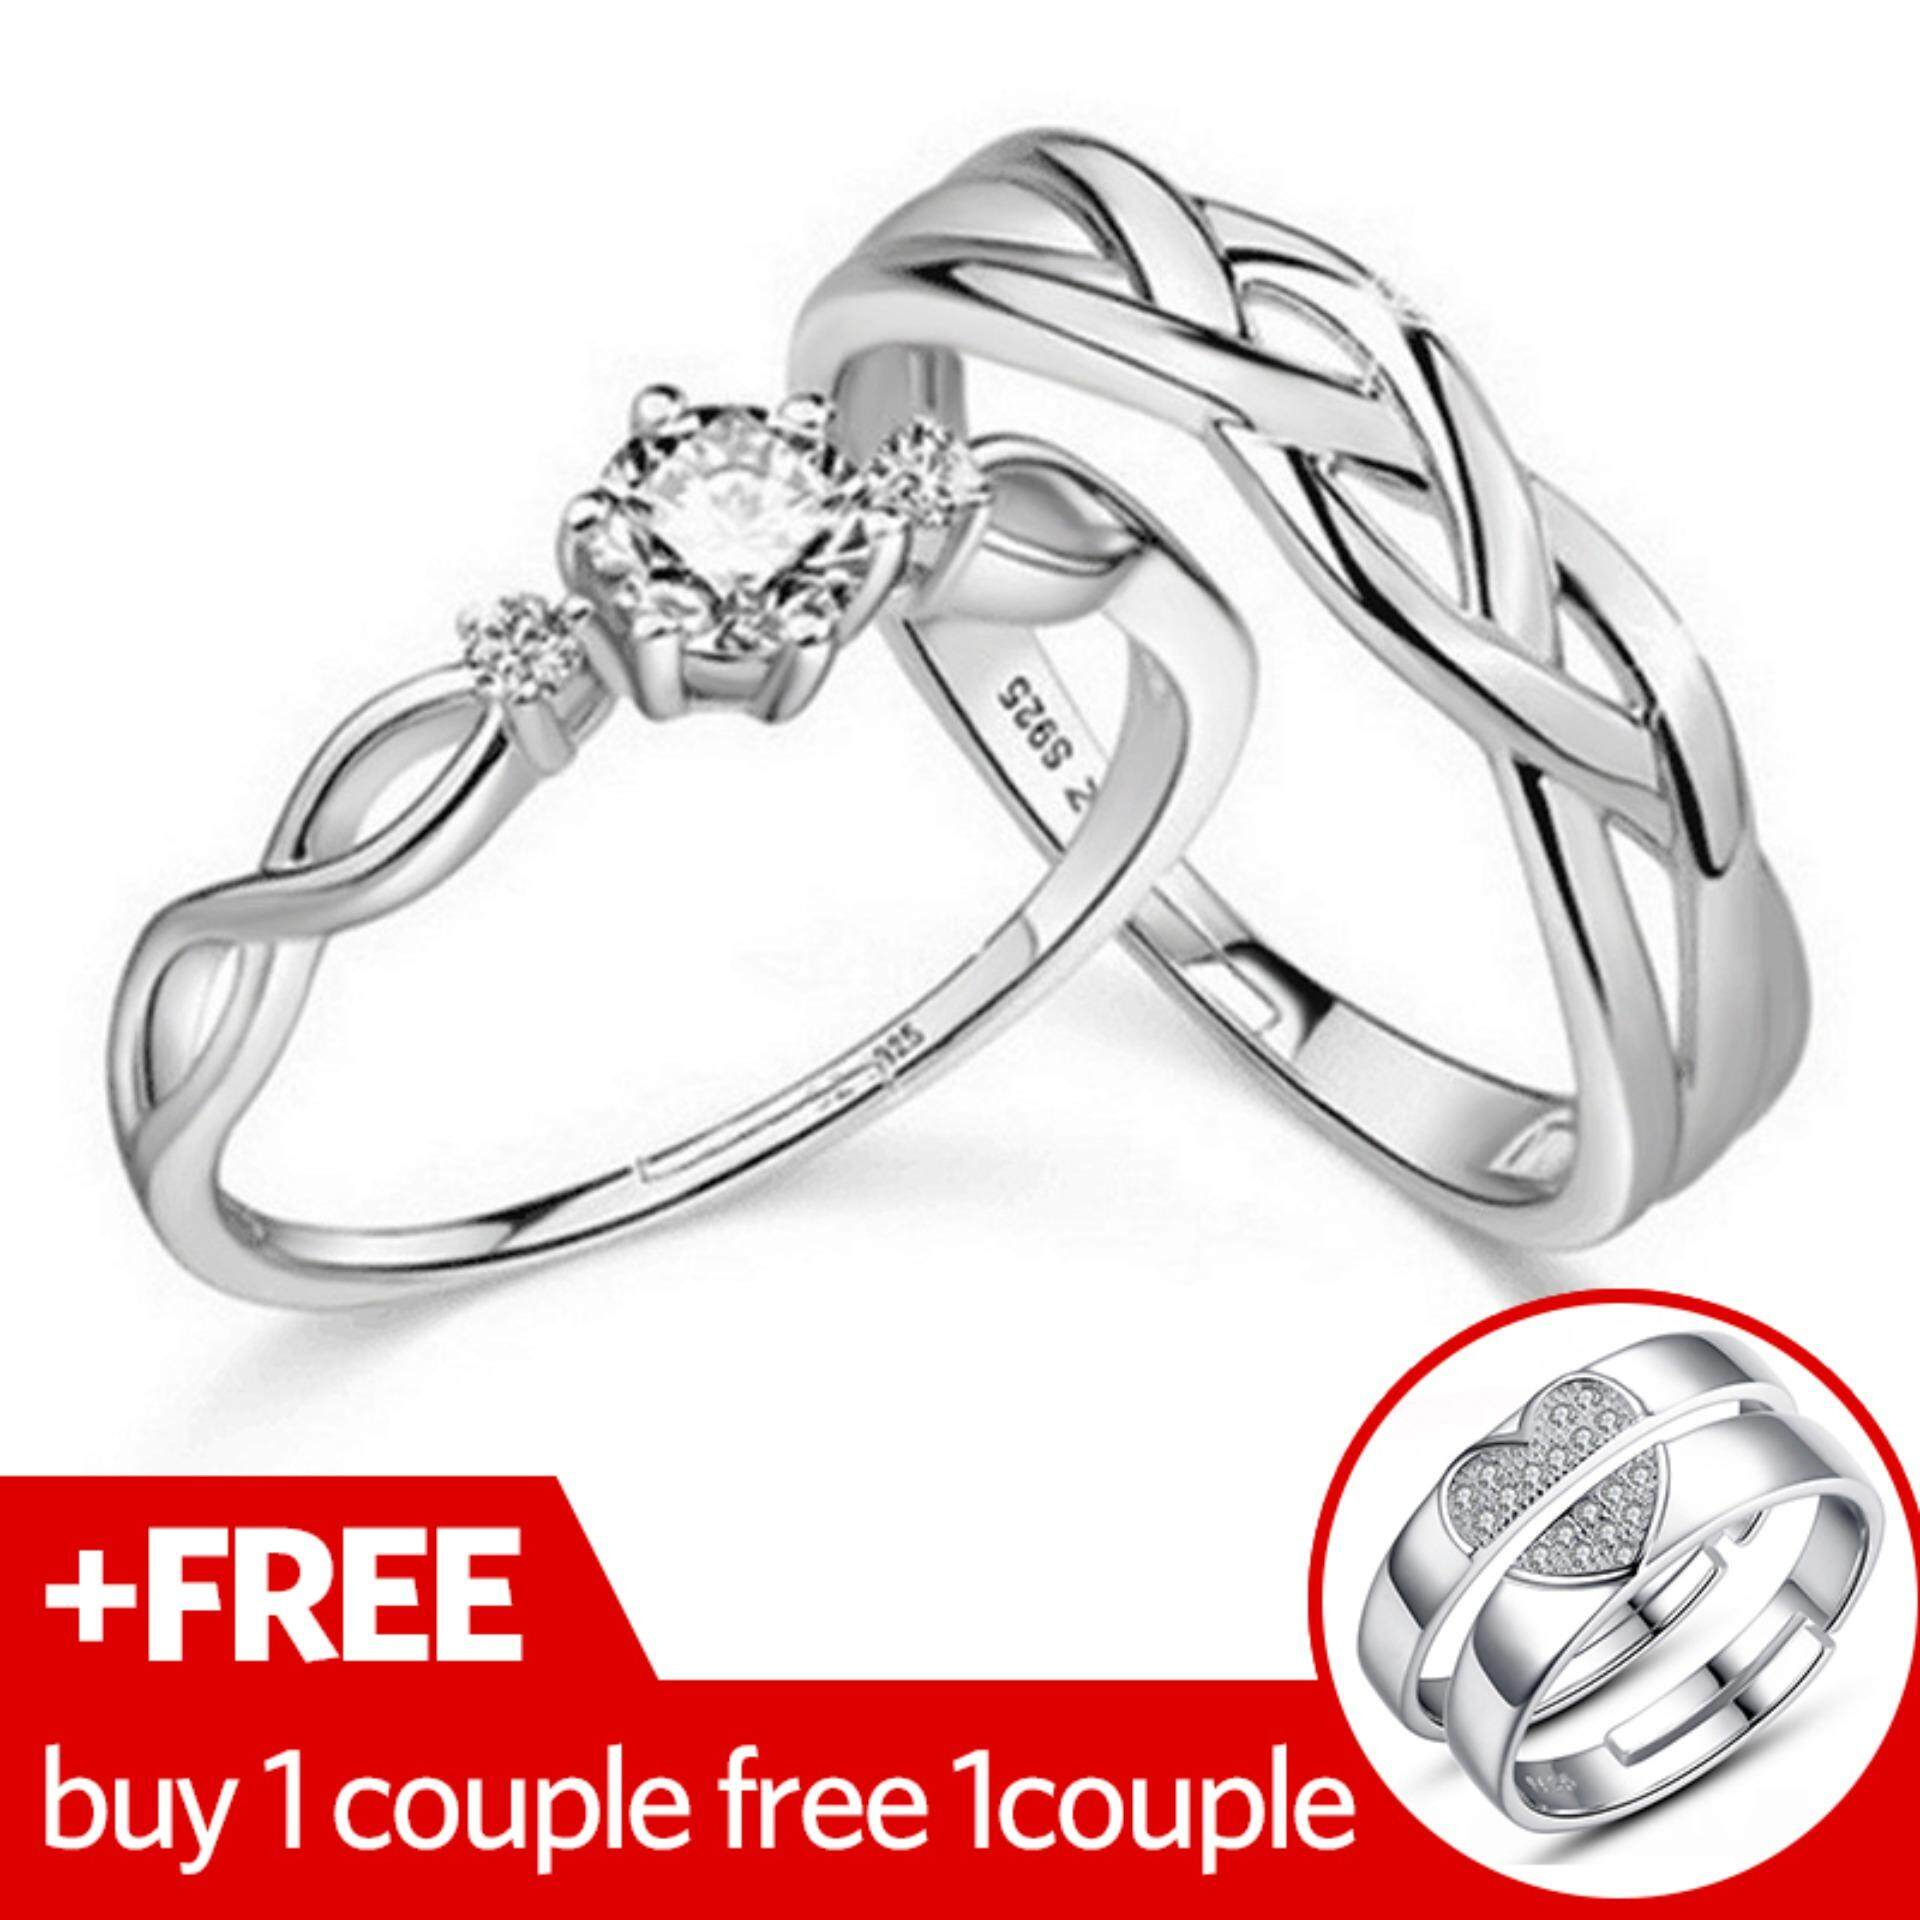 product pieces his iris band set jewelry promise image engagement fanfreakz products stainless color couple steel hers and progressive gold wedding ring rings